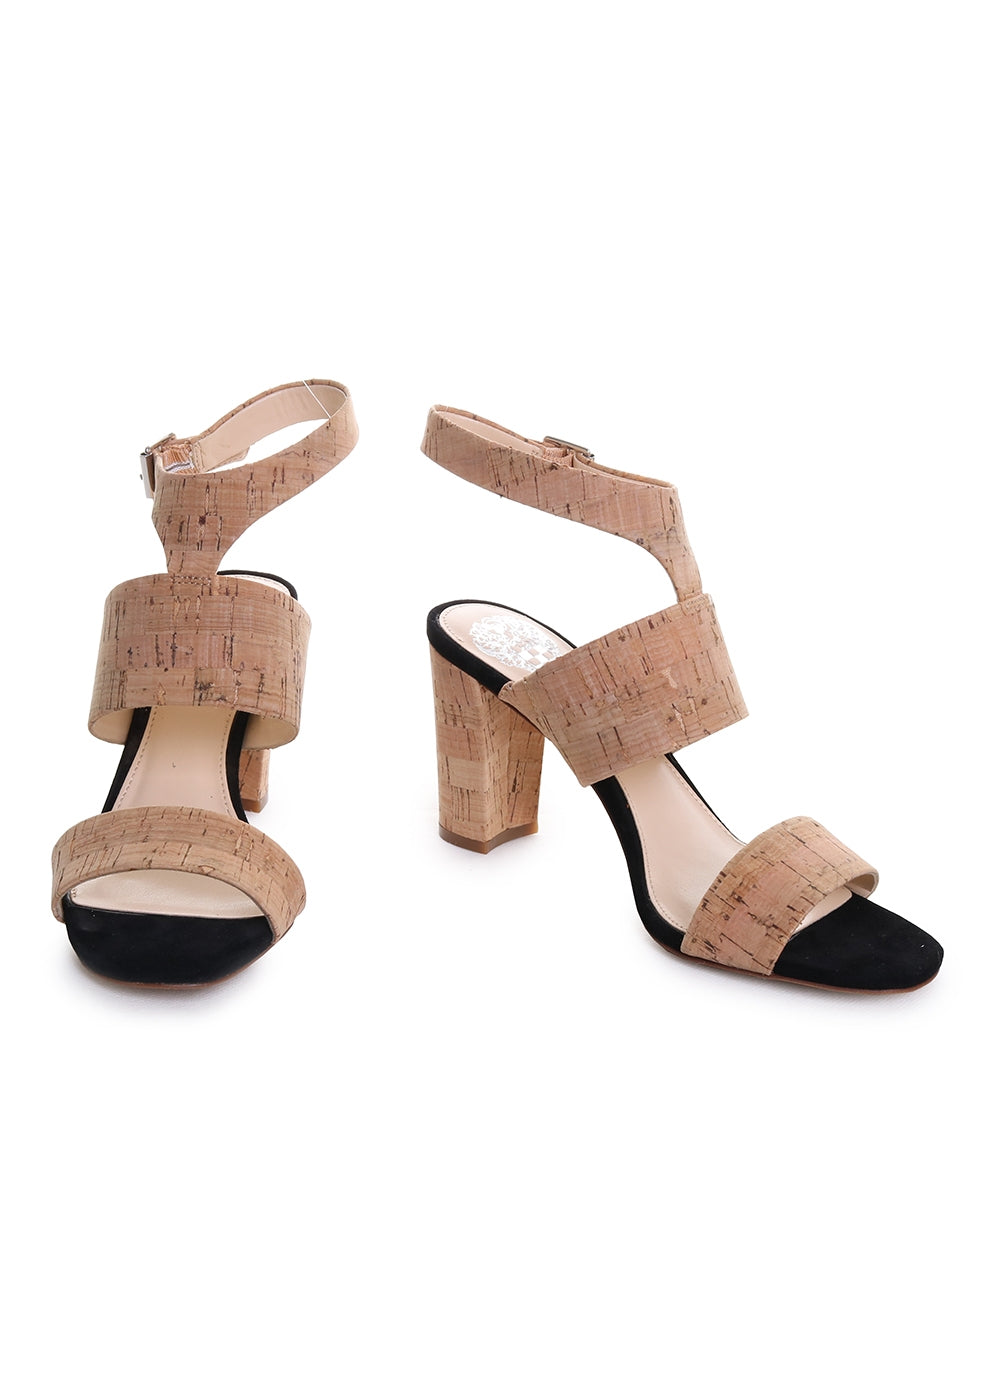 Warma Ankle Strap Suede Block Heel Sandal in Natural Cork